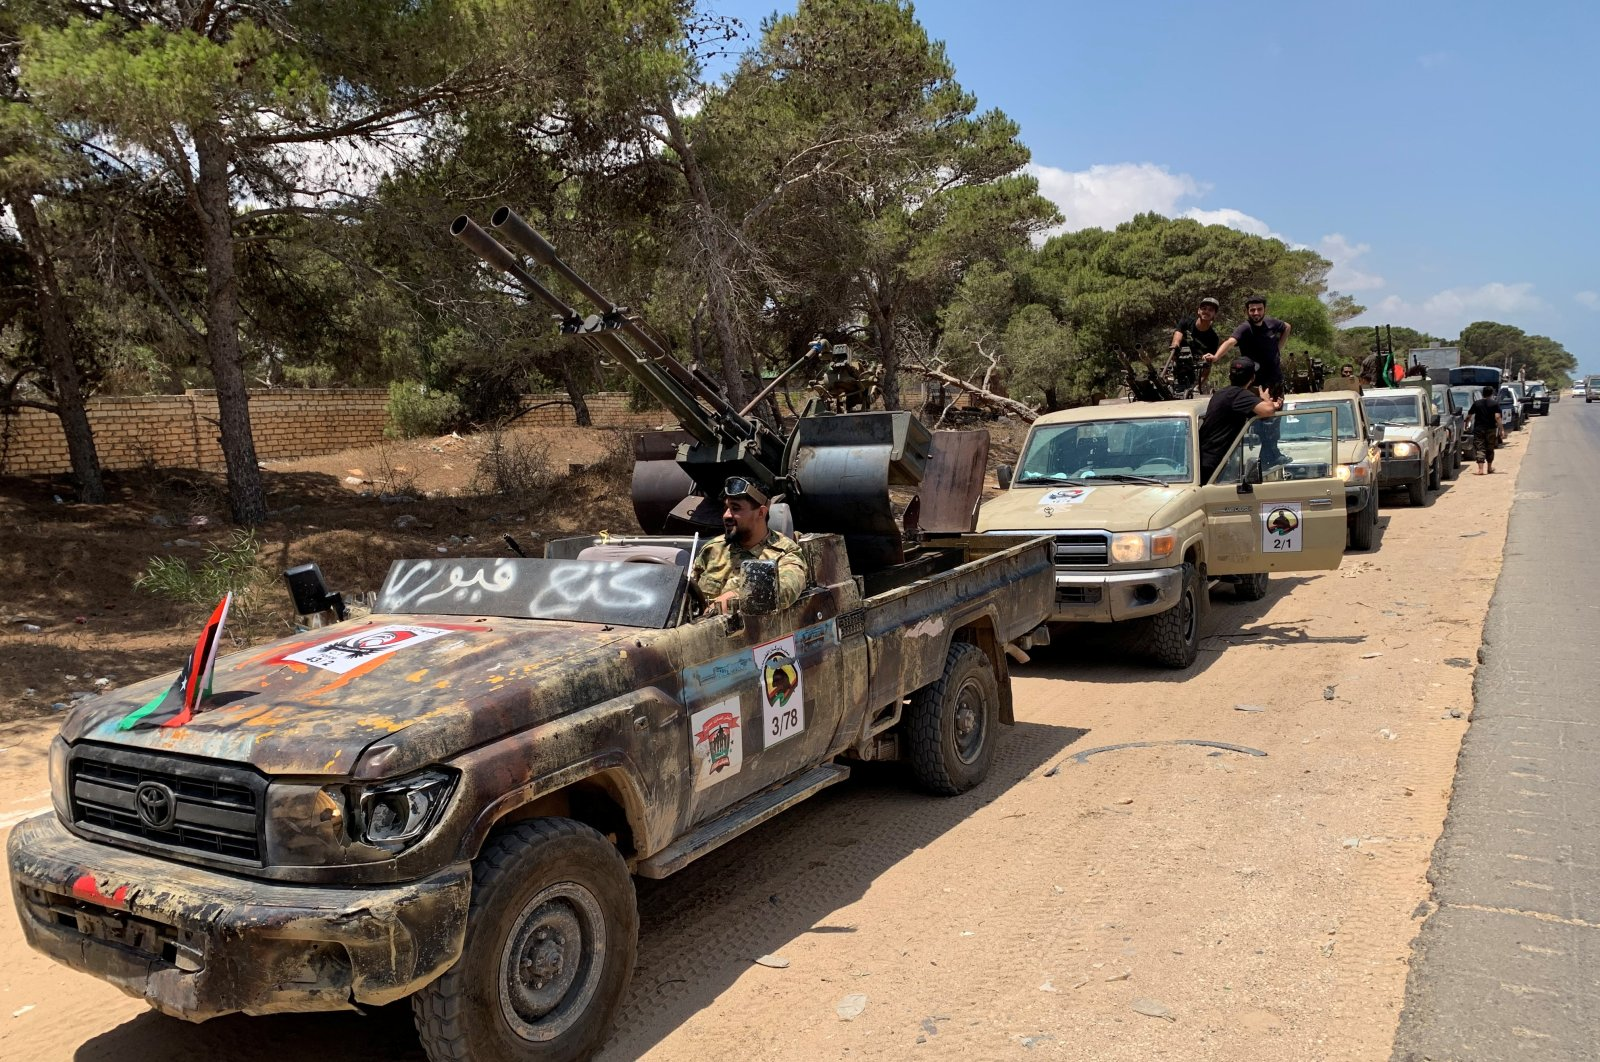 Troops loyal to Libya's internationally recognized government are seen in military vehicles as they prepare before heading to Sirte, in Tripoli, July 6, 2020. (Reuters Photo)